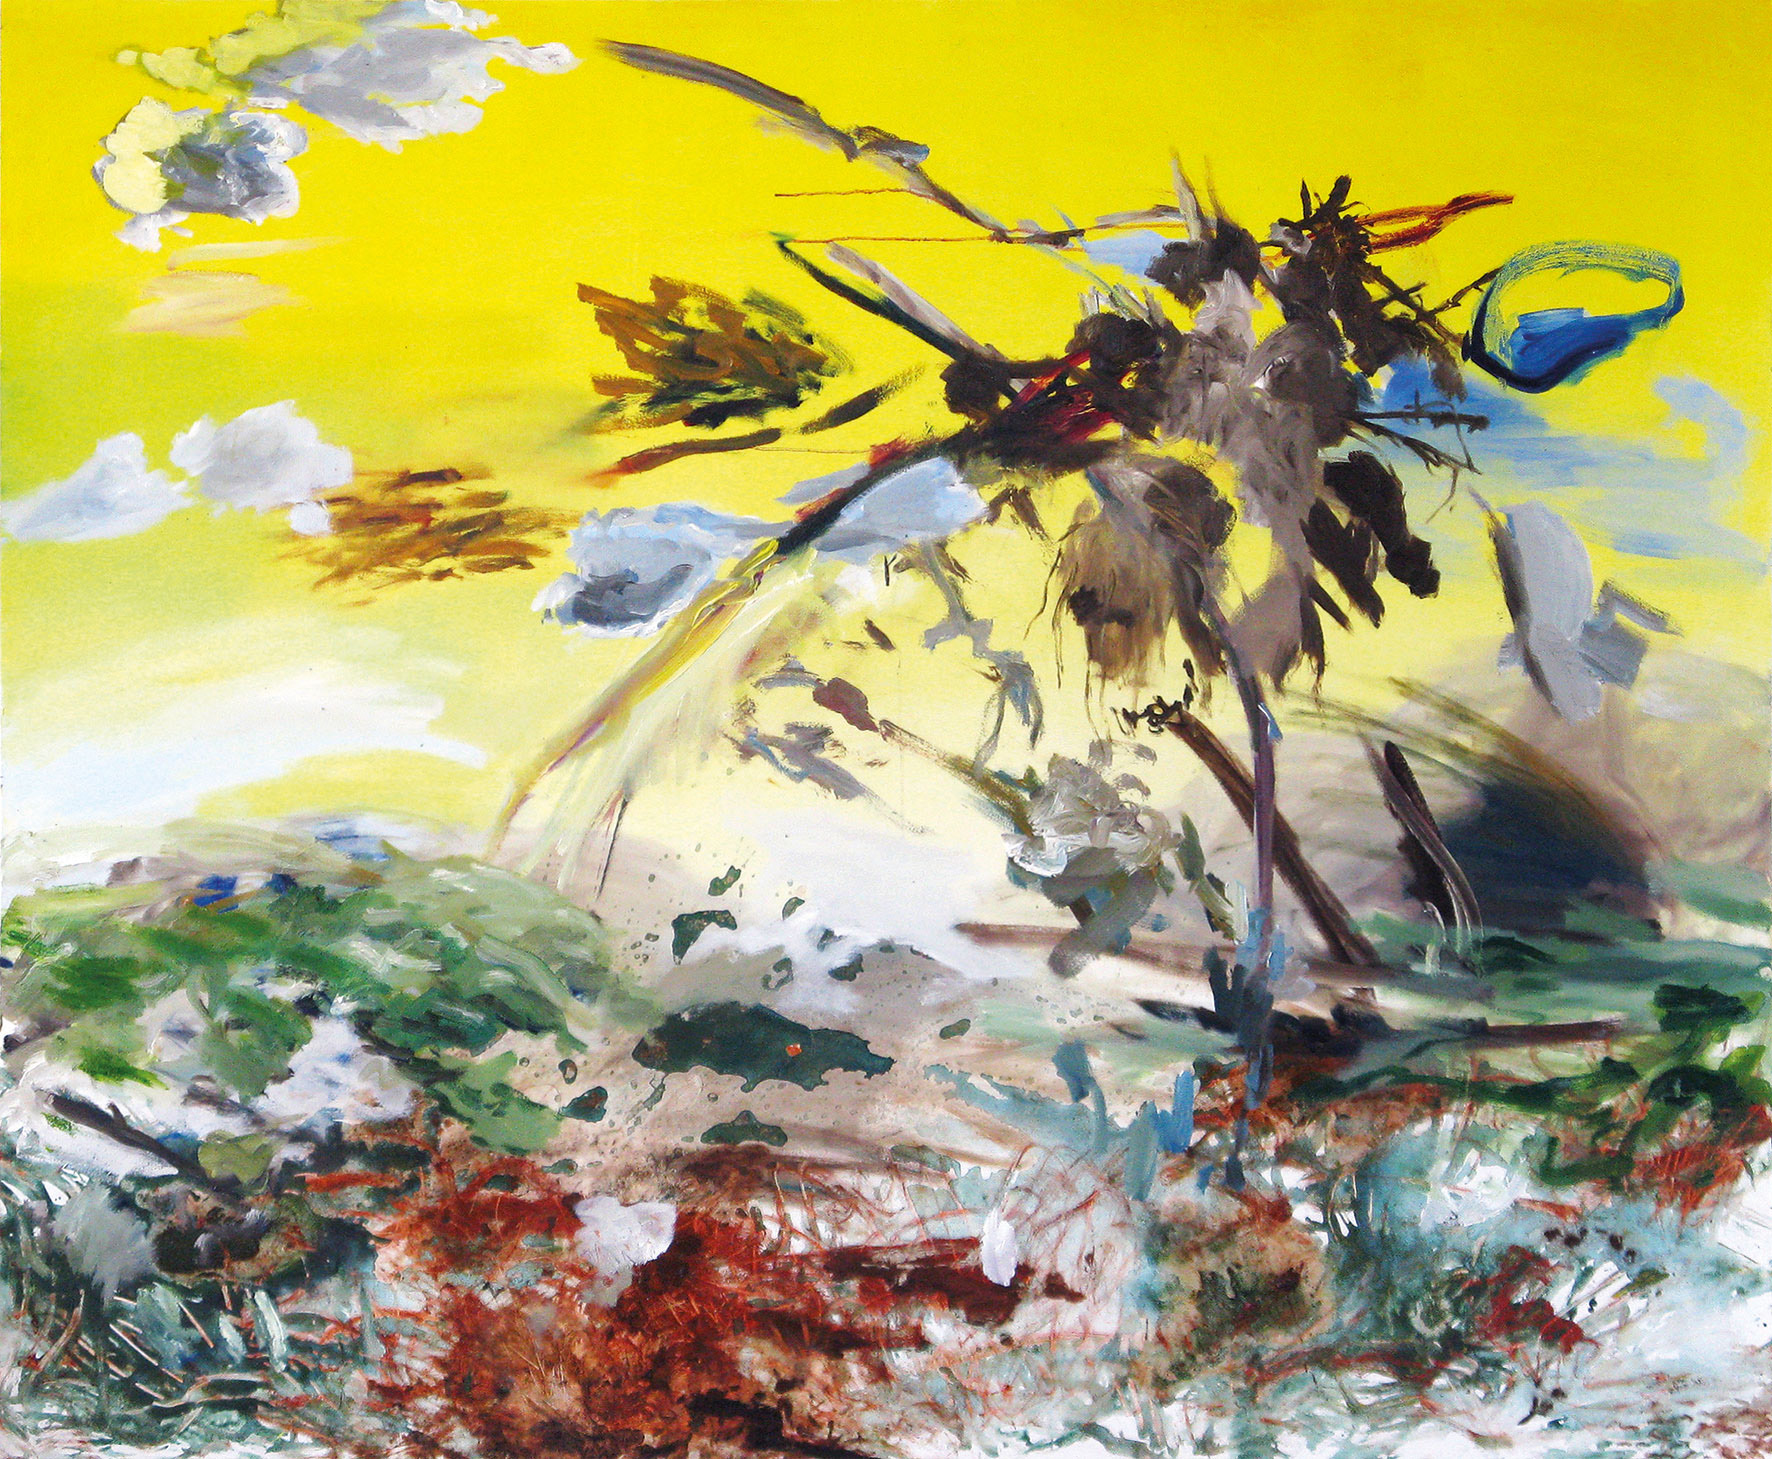 Big Bang or the beginning of a painted world | acrylic and oil on canvas, 150 x 180 cm, 2008